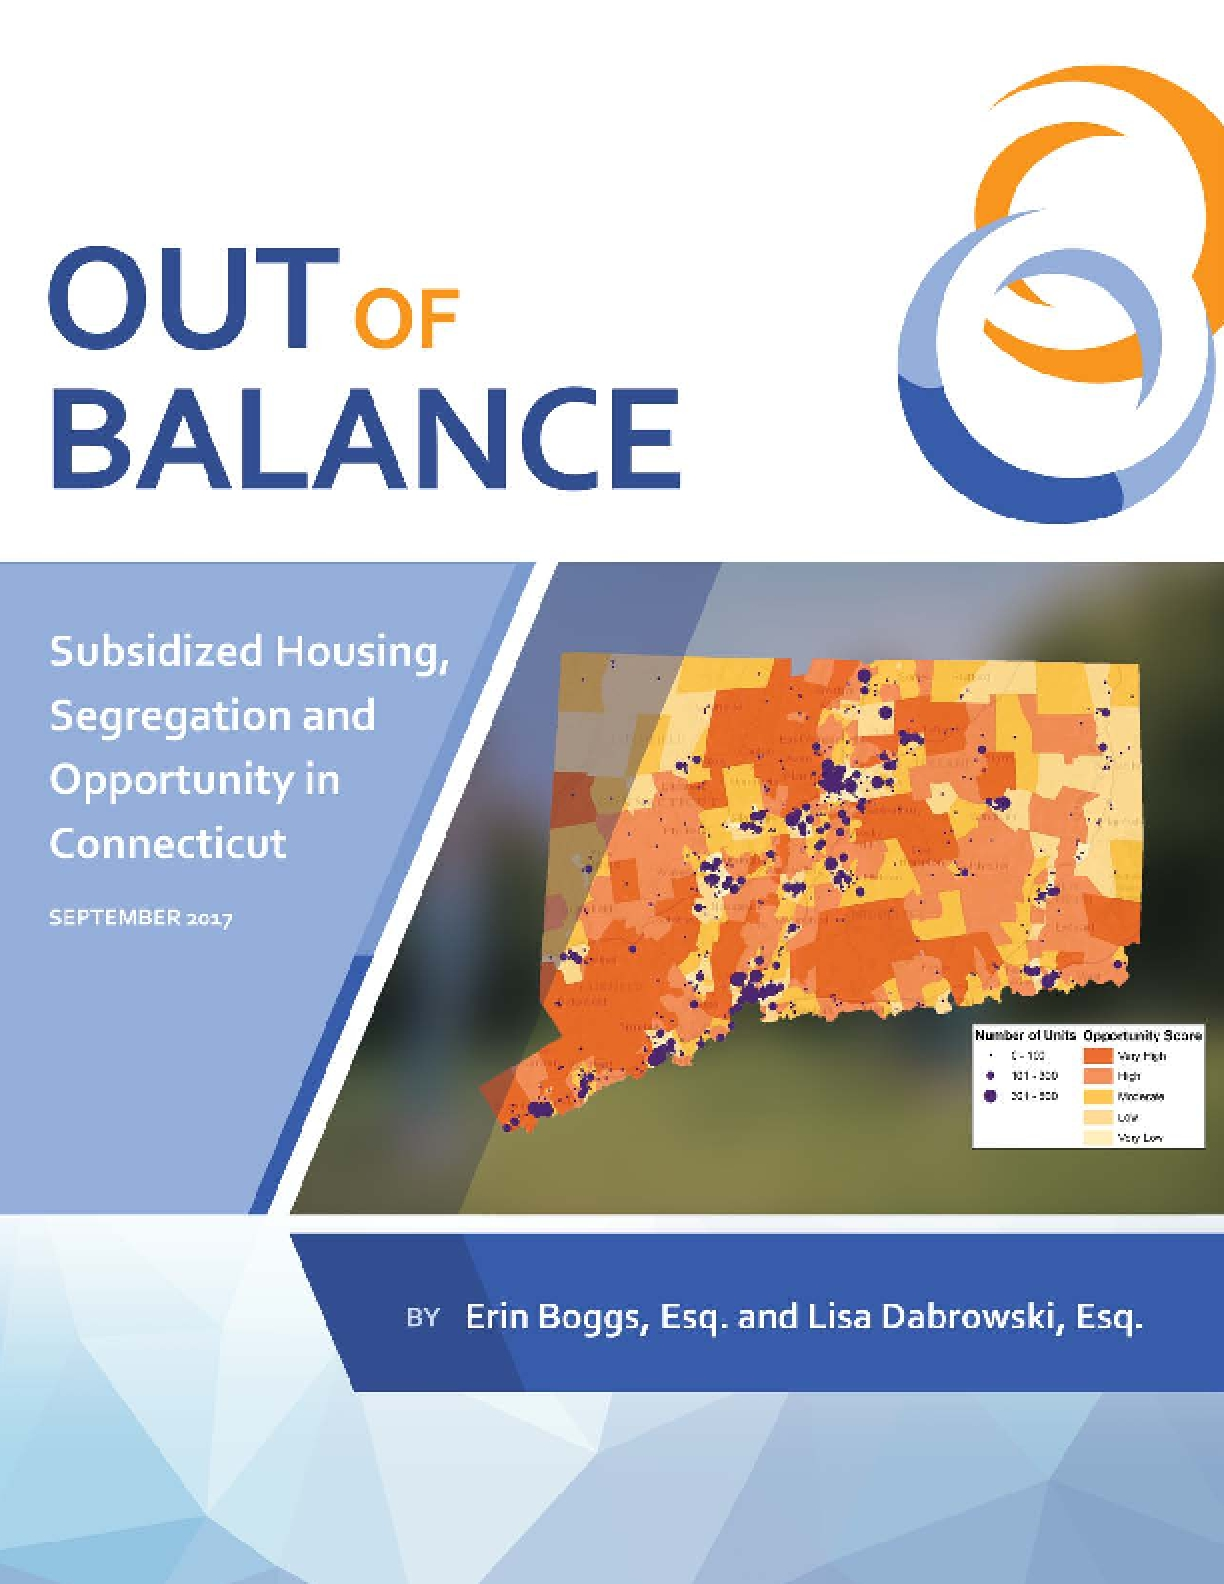 Out of Balance: The Role of Subsidized Housing Location in the Opportunity Divide in Connecticut